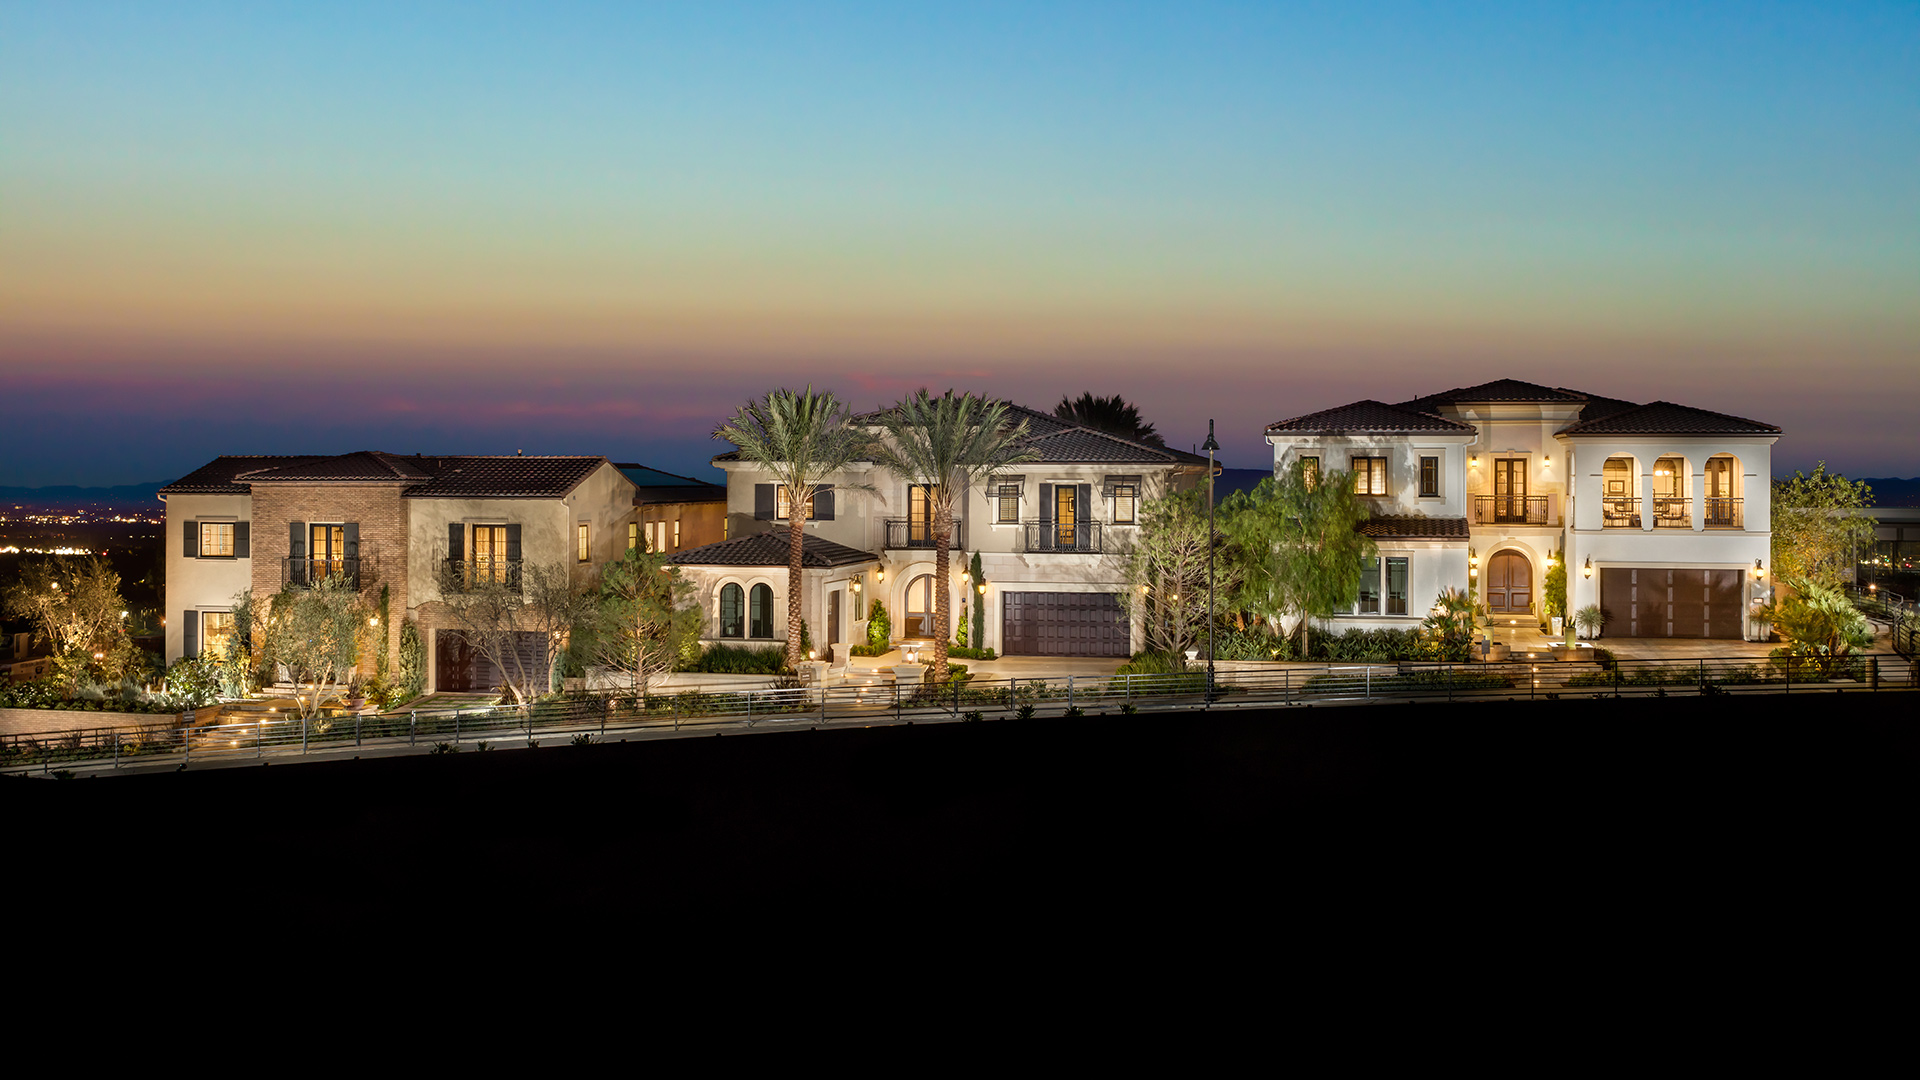 porter ranch ca new homes for sale | westcliffe at porter ranch